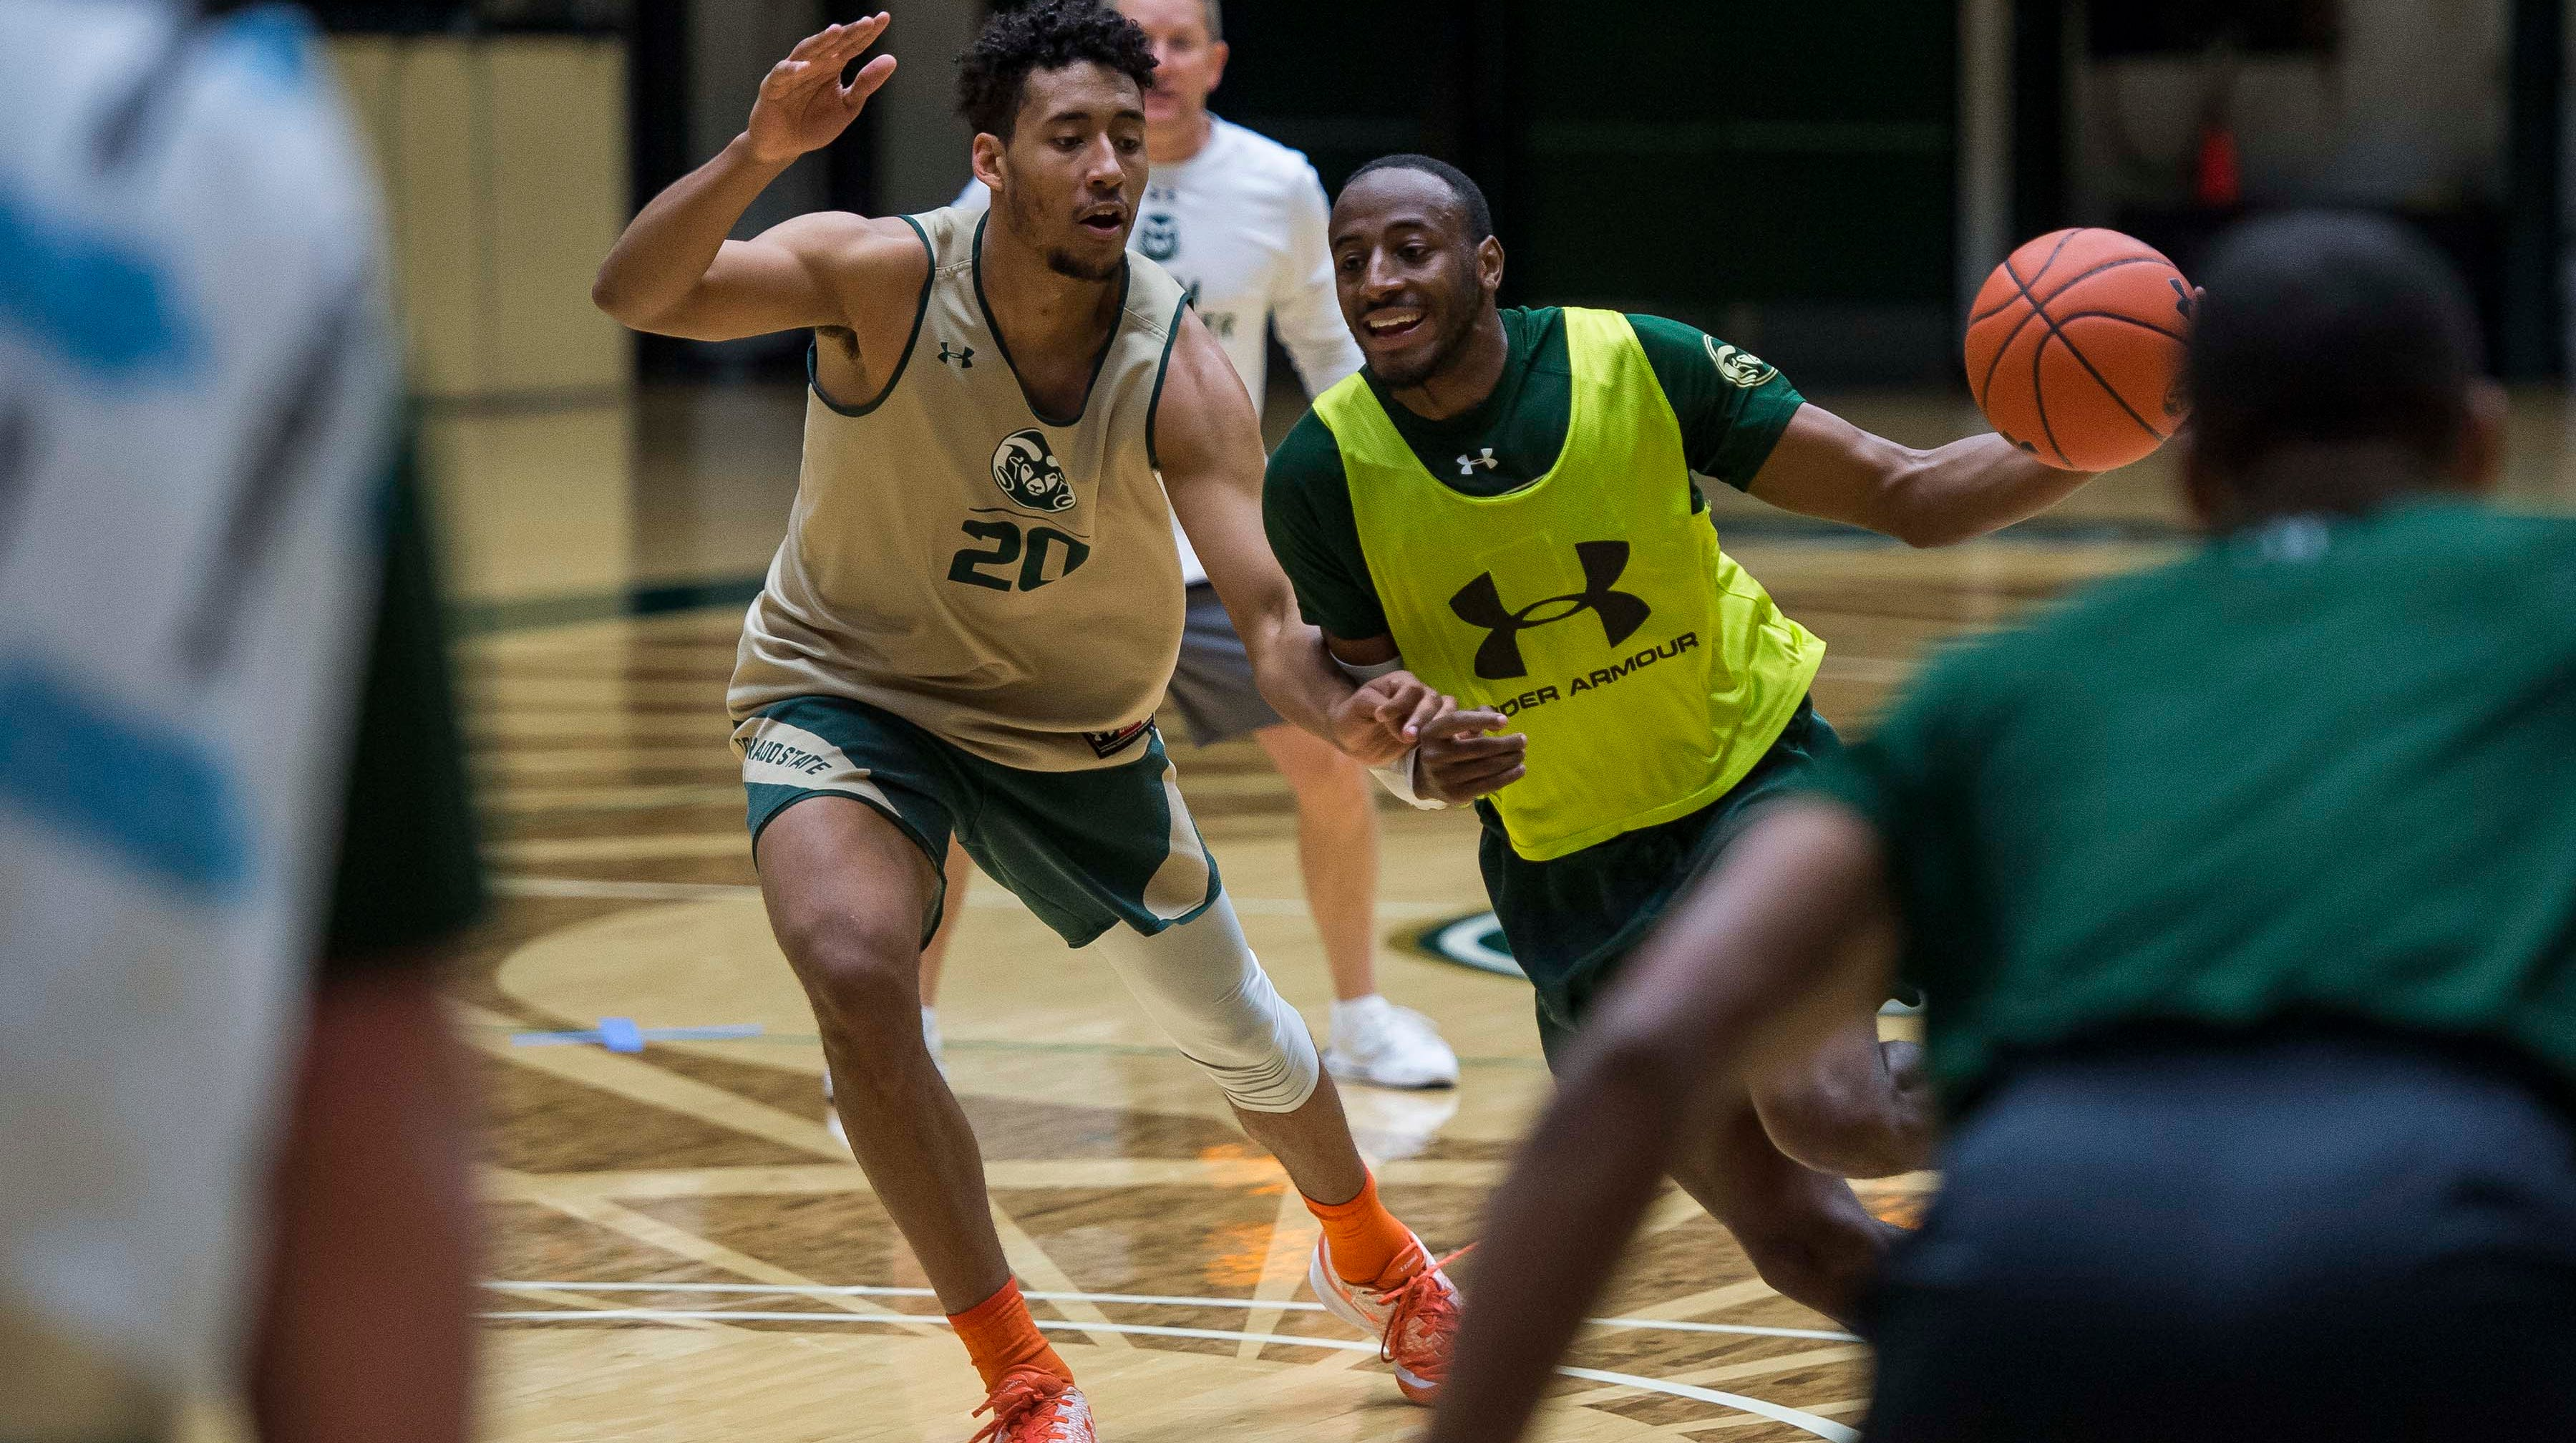 Colorado State University basketball team picked 8th in preseason Mountain West poll